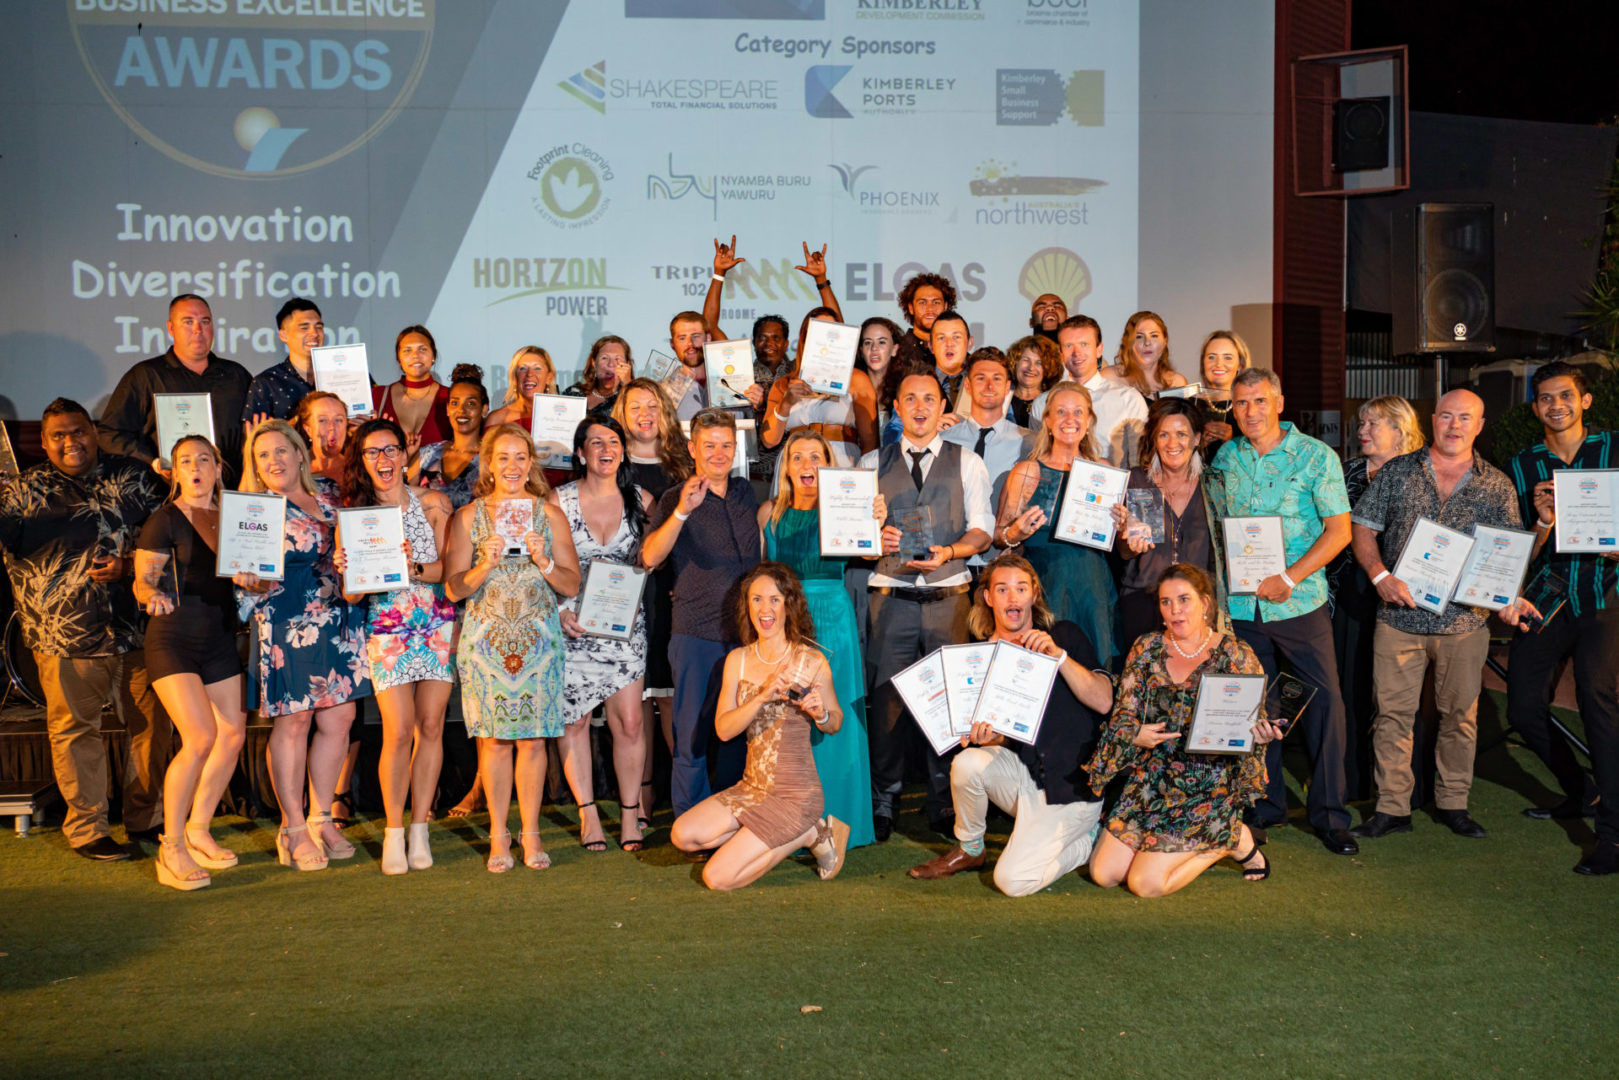 2020 Broome Business Excellence Awards – WINNERS ANNOUNCED